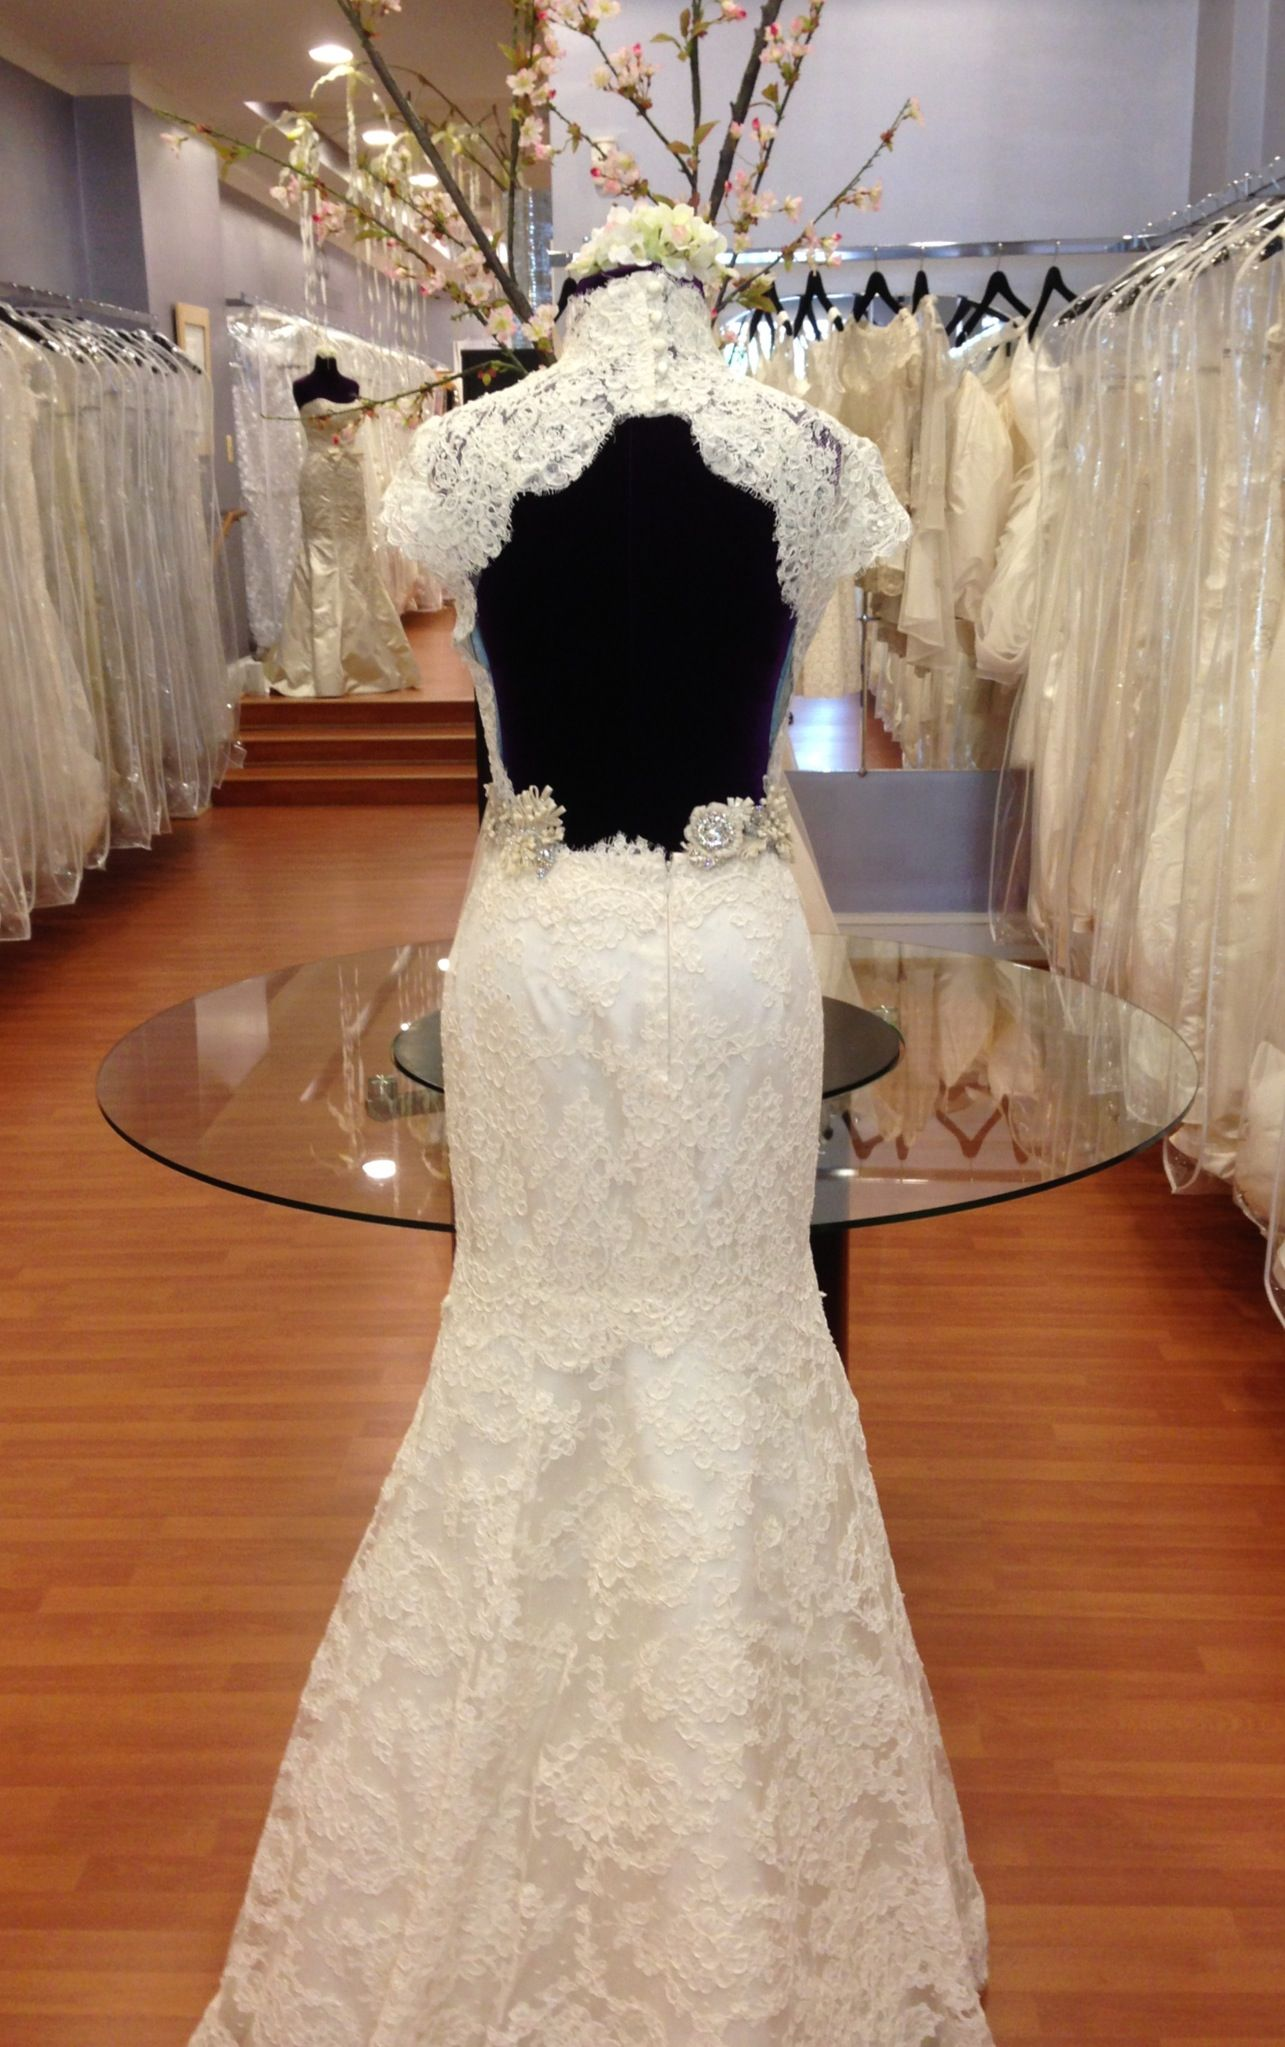 One of a kind wedding dresses  All French lace wedding dress with the keyhole back Oneofakind